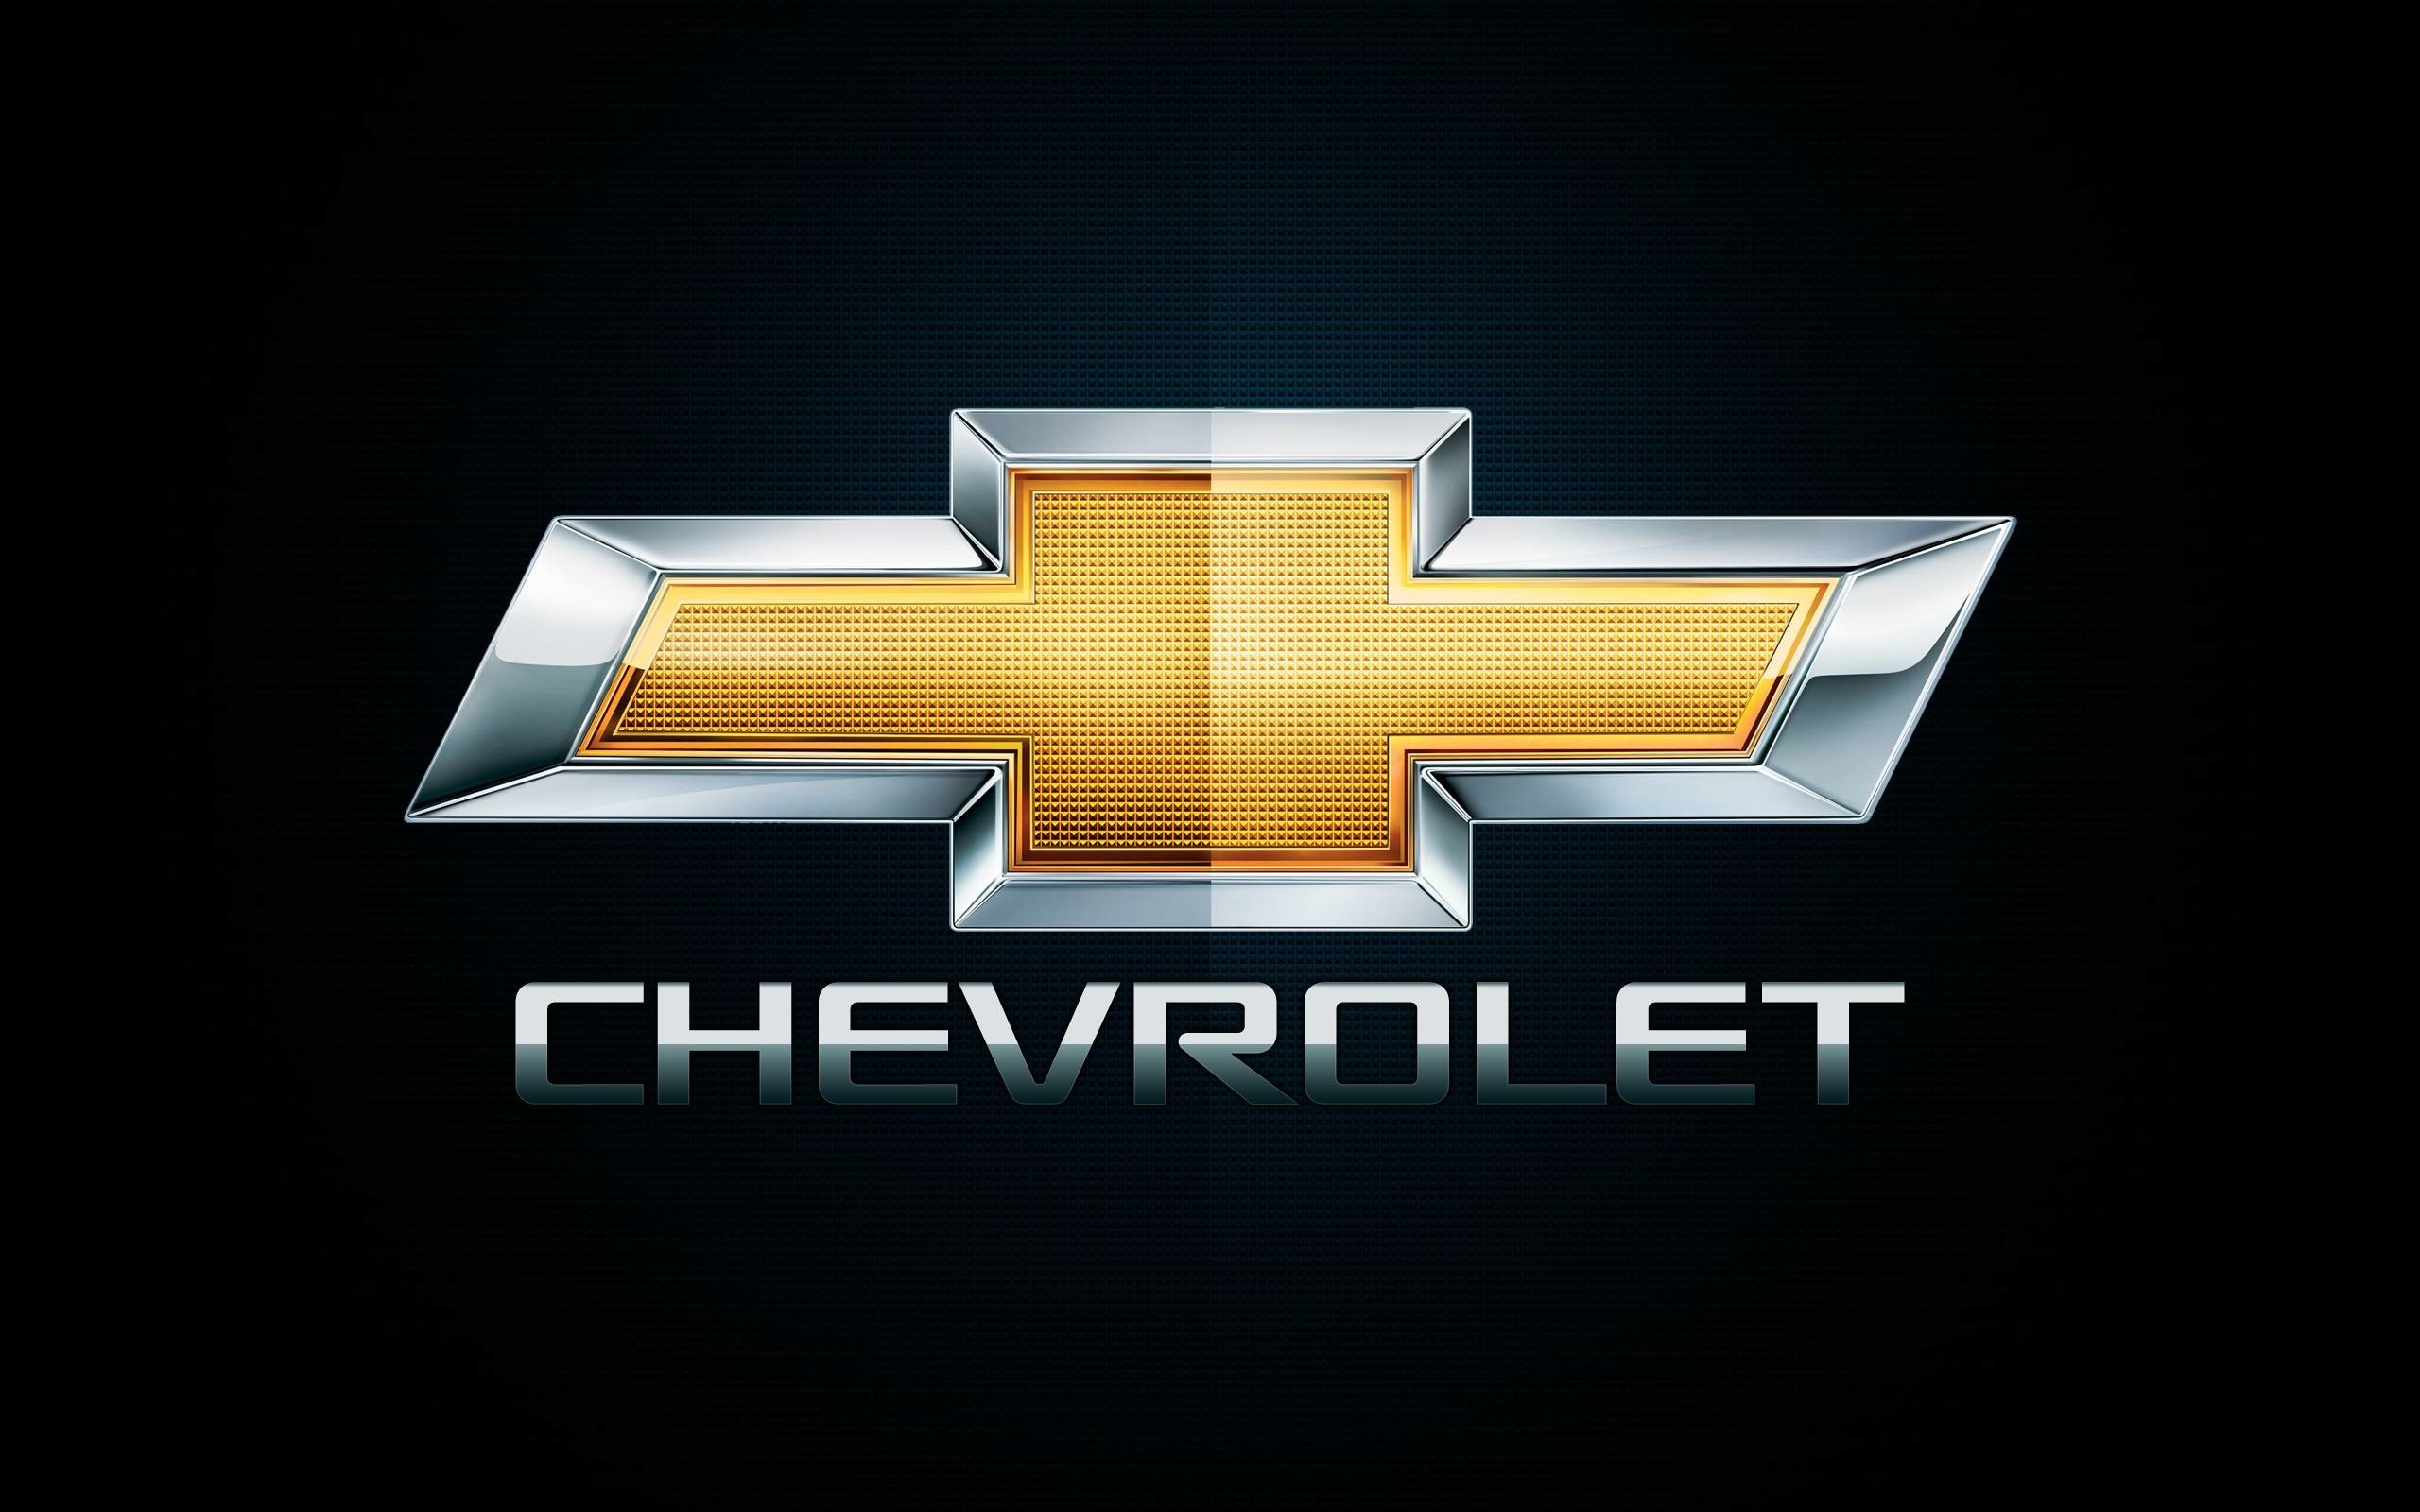 2560x1600 Chevrolet Logo Wallpapers - Full HD wallpaper search